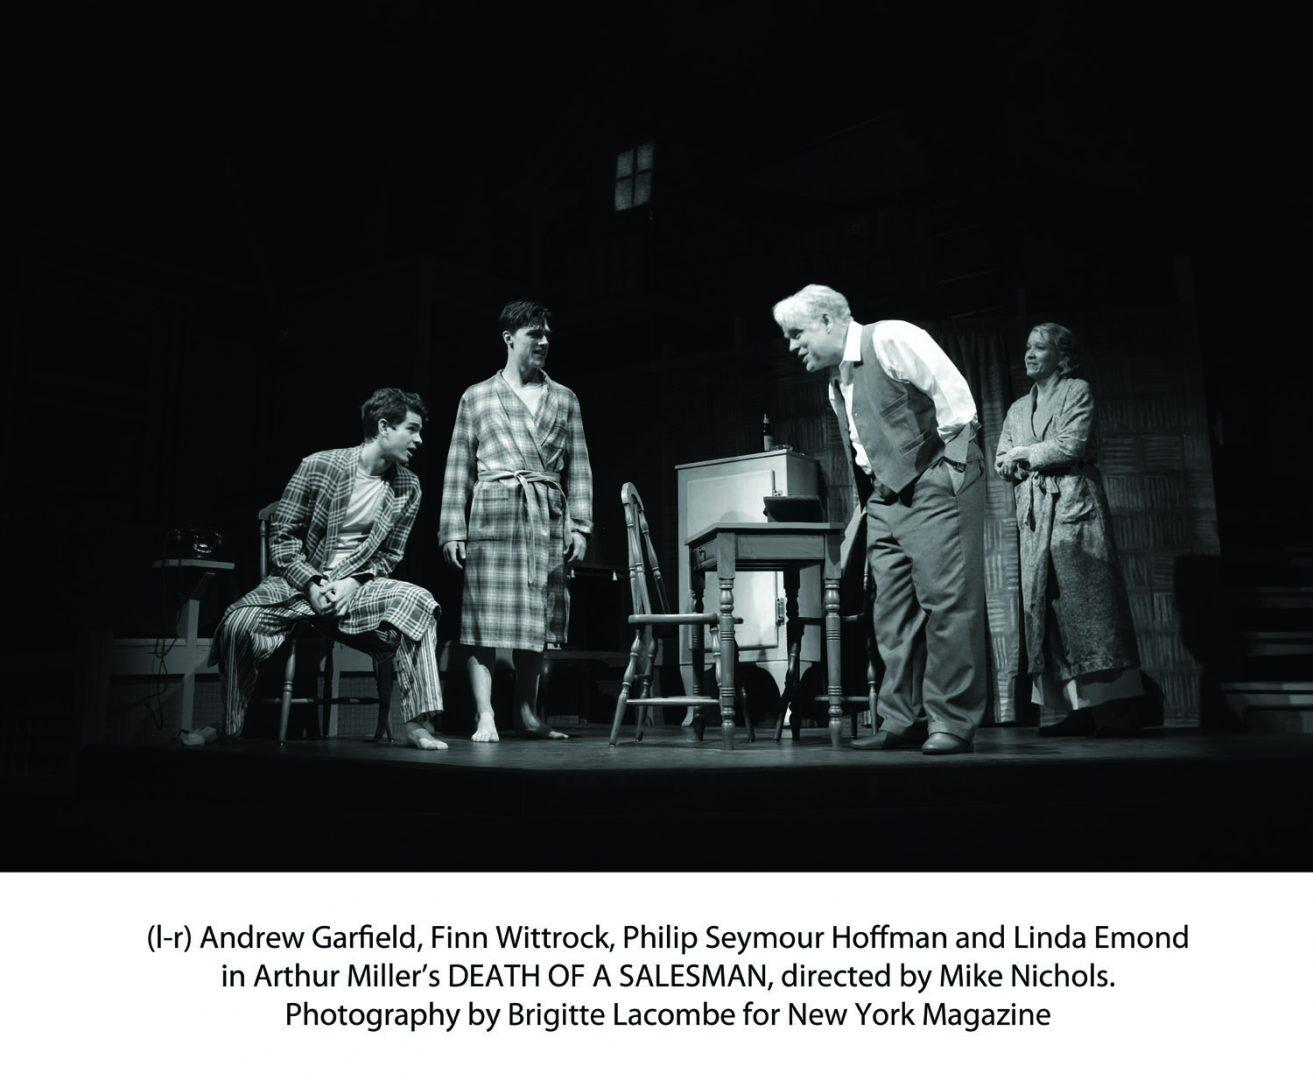 arthur miller s death of a sman revived on broadway fordham andrew garfield